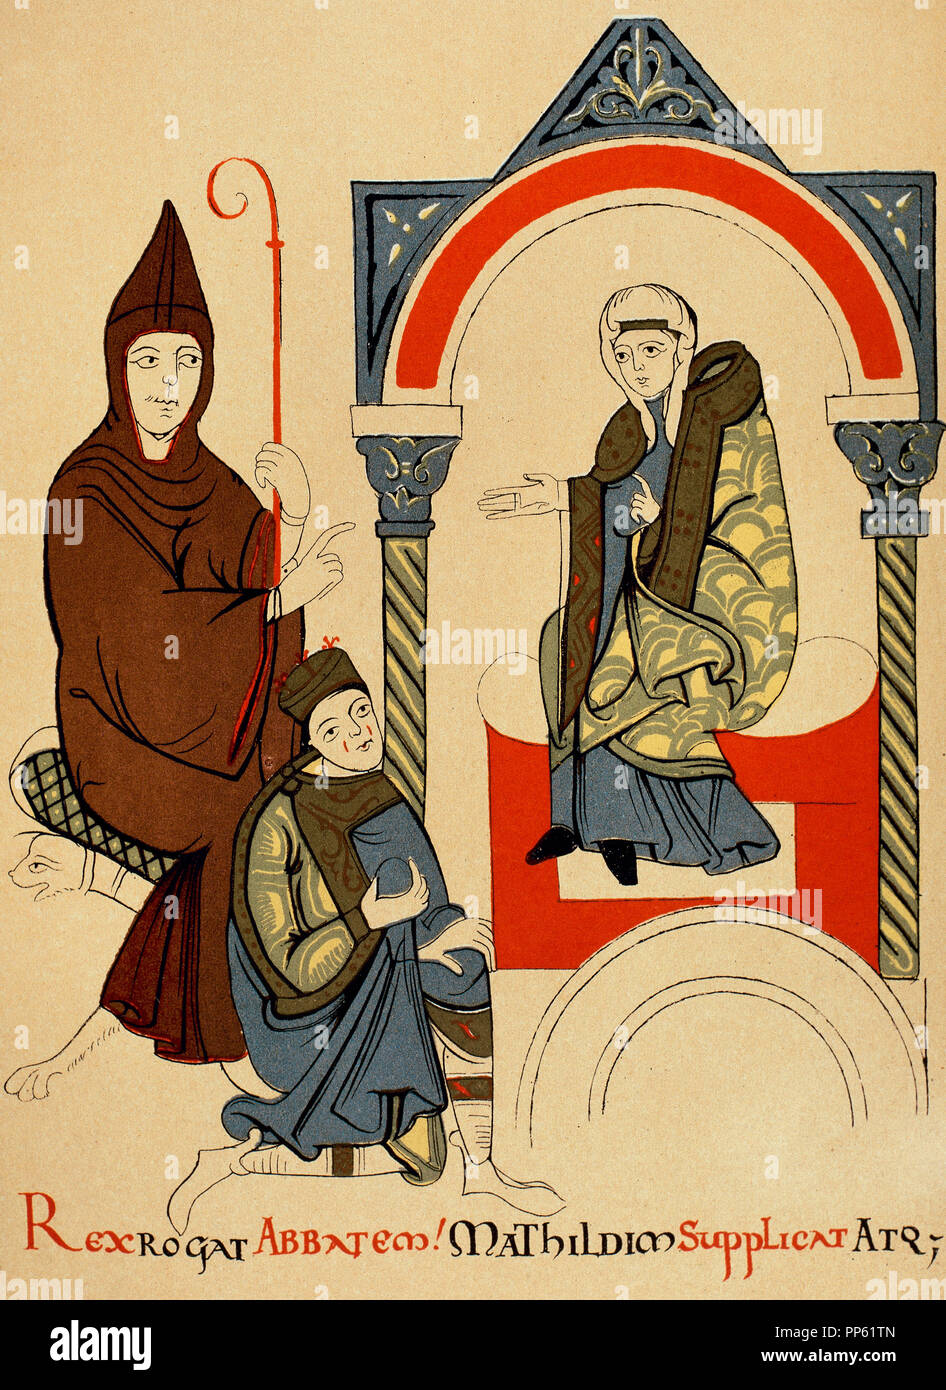 Matilda, Countess of Tuscany, sits on a throne framed by an archway. Her cousin, Holy roman Emperor Henry IV (1050-1106) kneels before her in supplication. Behind him, the Abbot Hugh of Cluny sits on an elaborate seat holding a crosier. Italy. 12th century. Medieval miniature, facsimile. Stock Photo